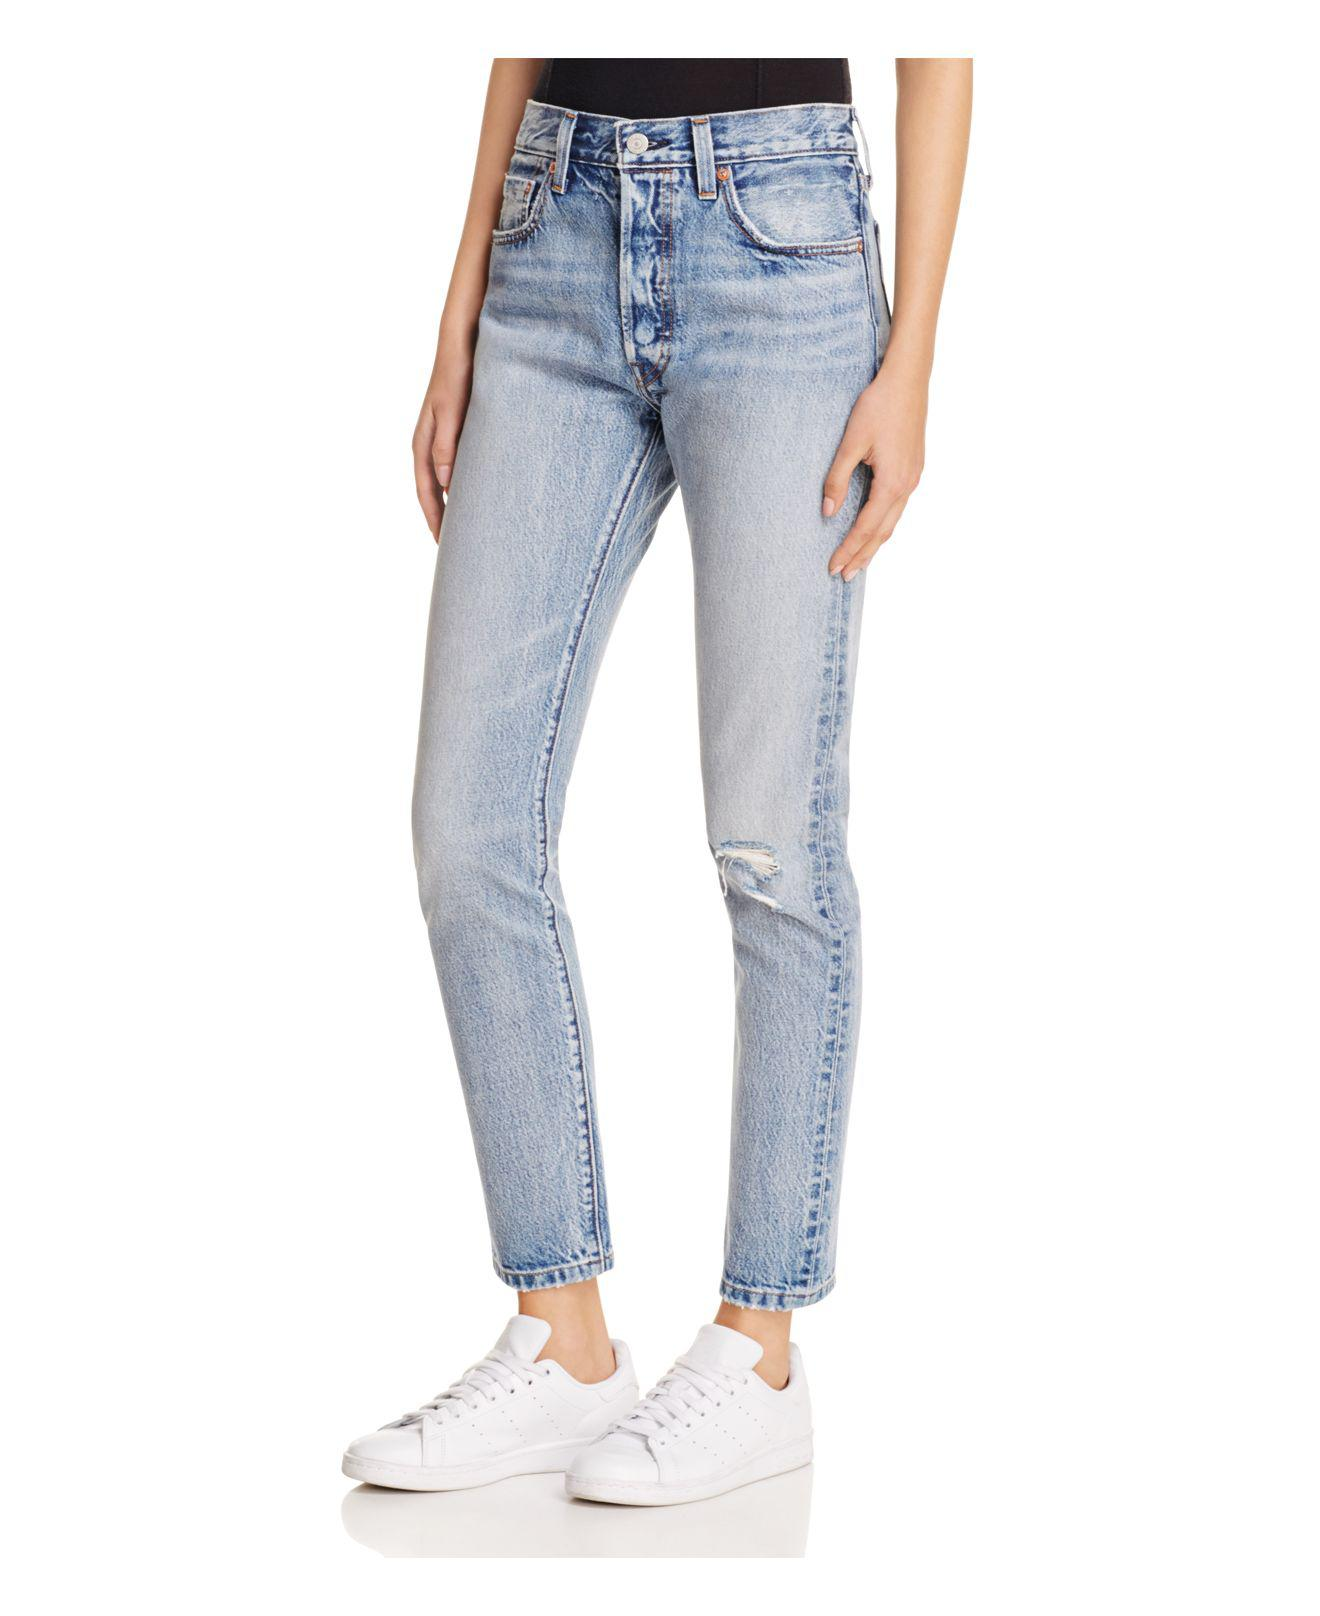 Sale - Colin Jeans - Levis Levi's Quality Free Shipping Low Price E5V2W1n4Vd